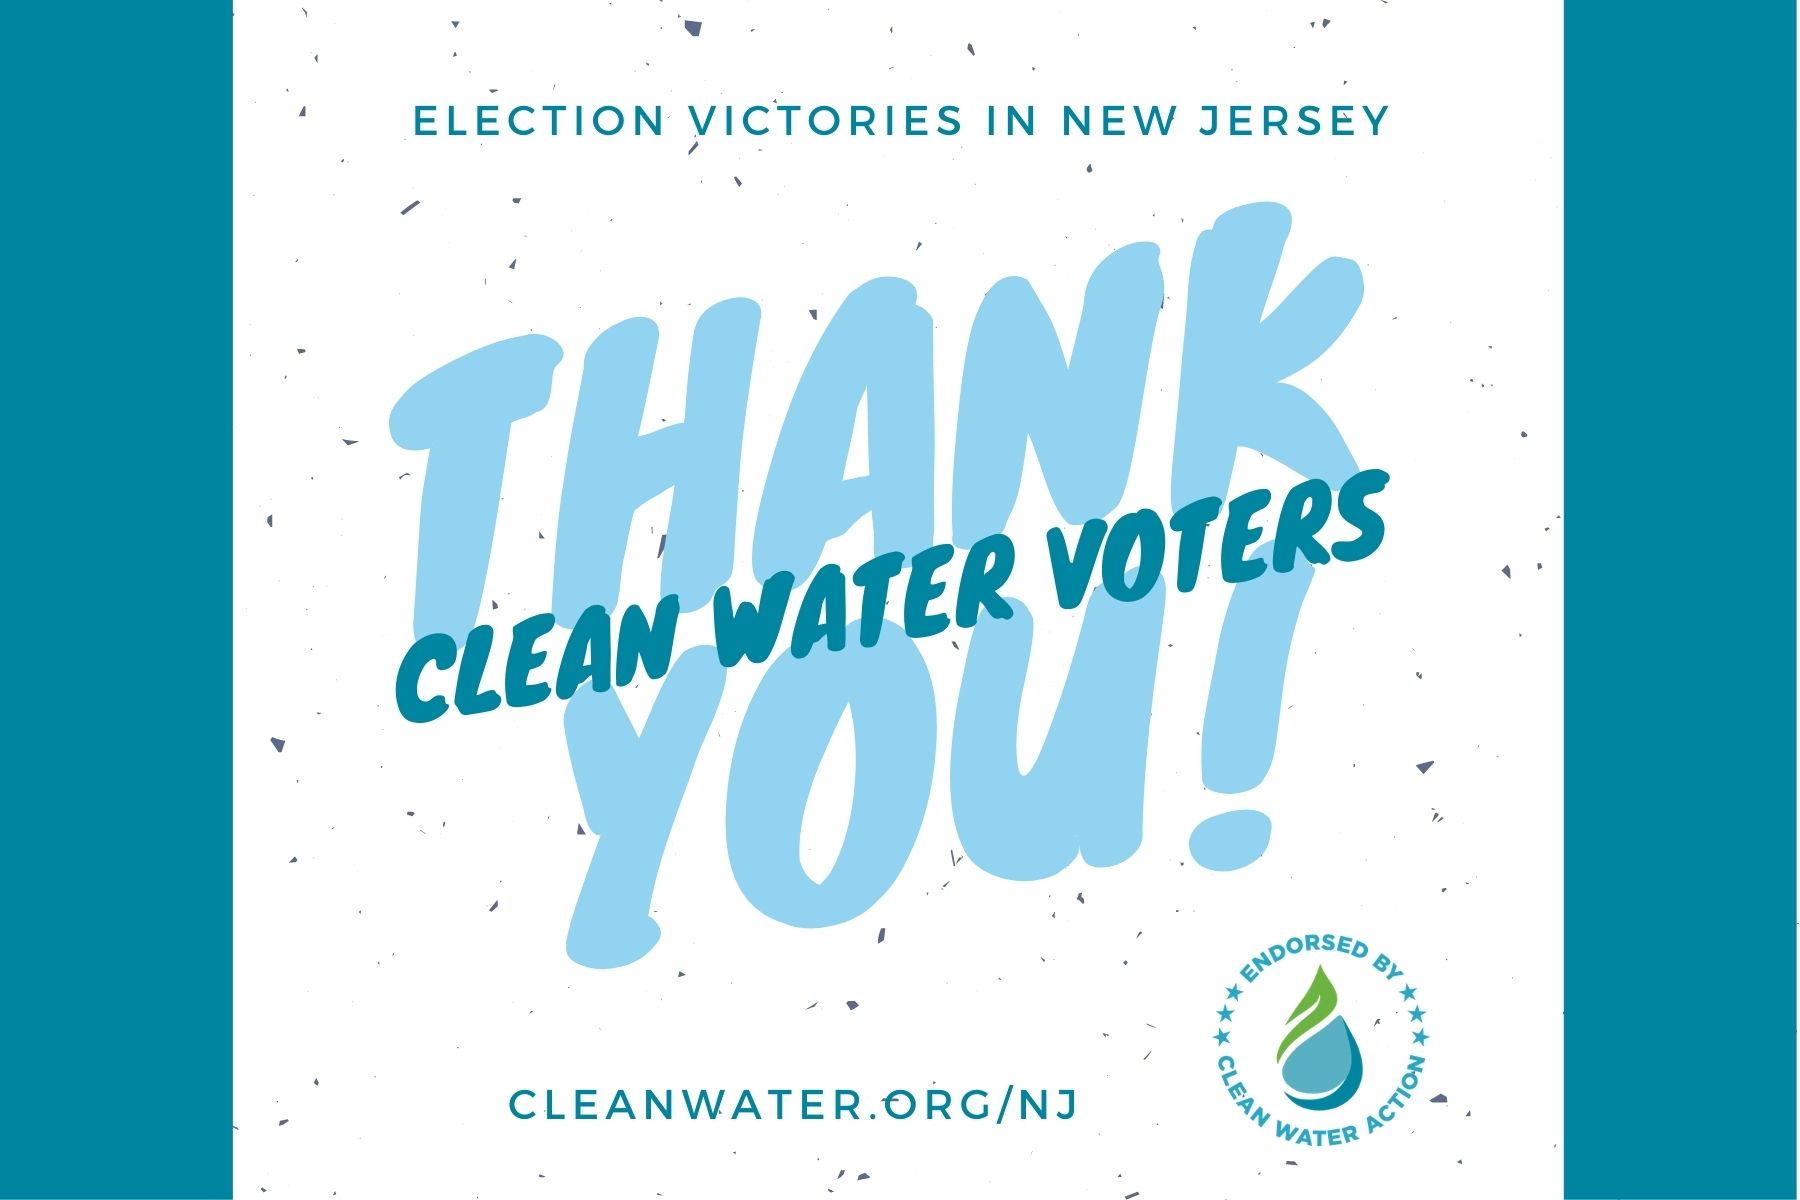 Clean Water Voters - NJ